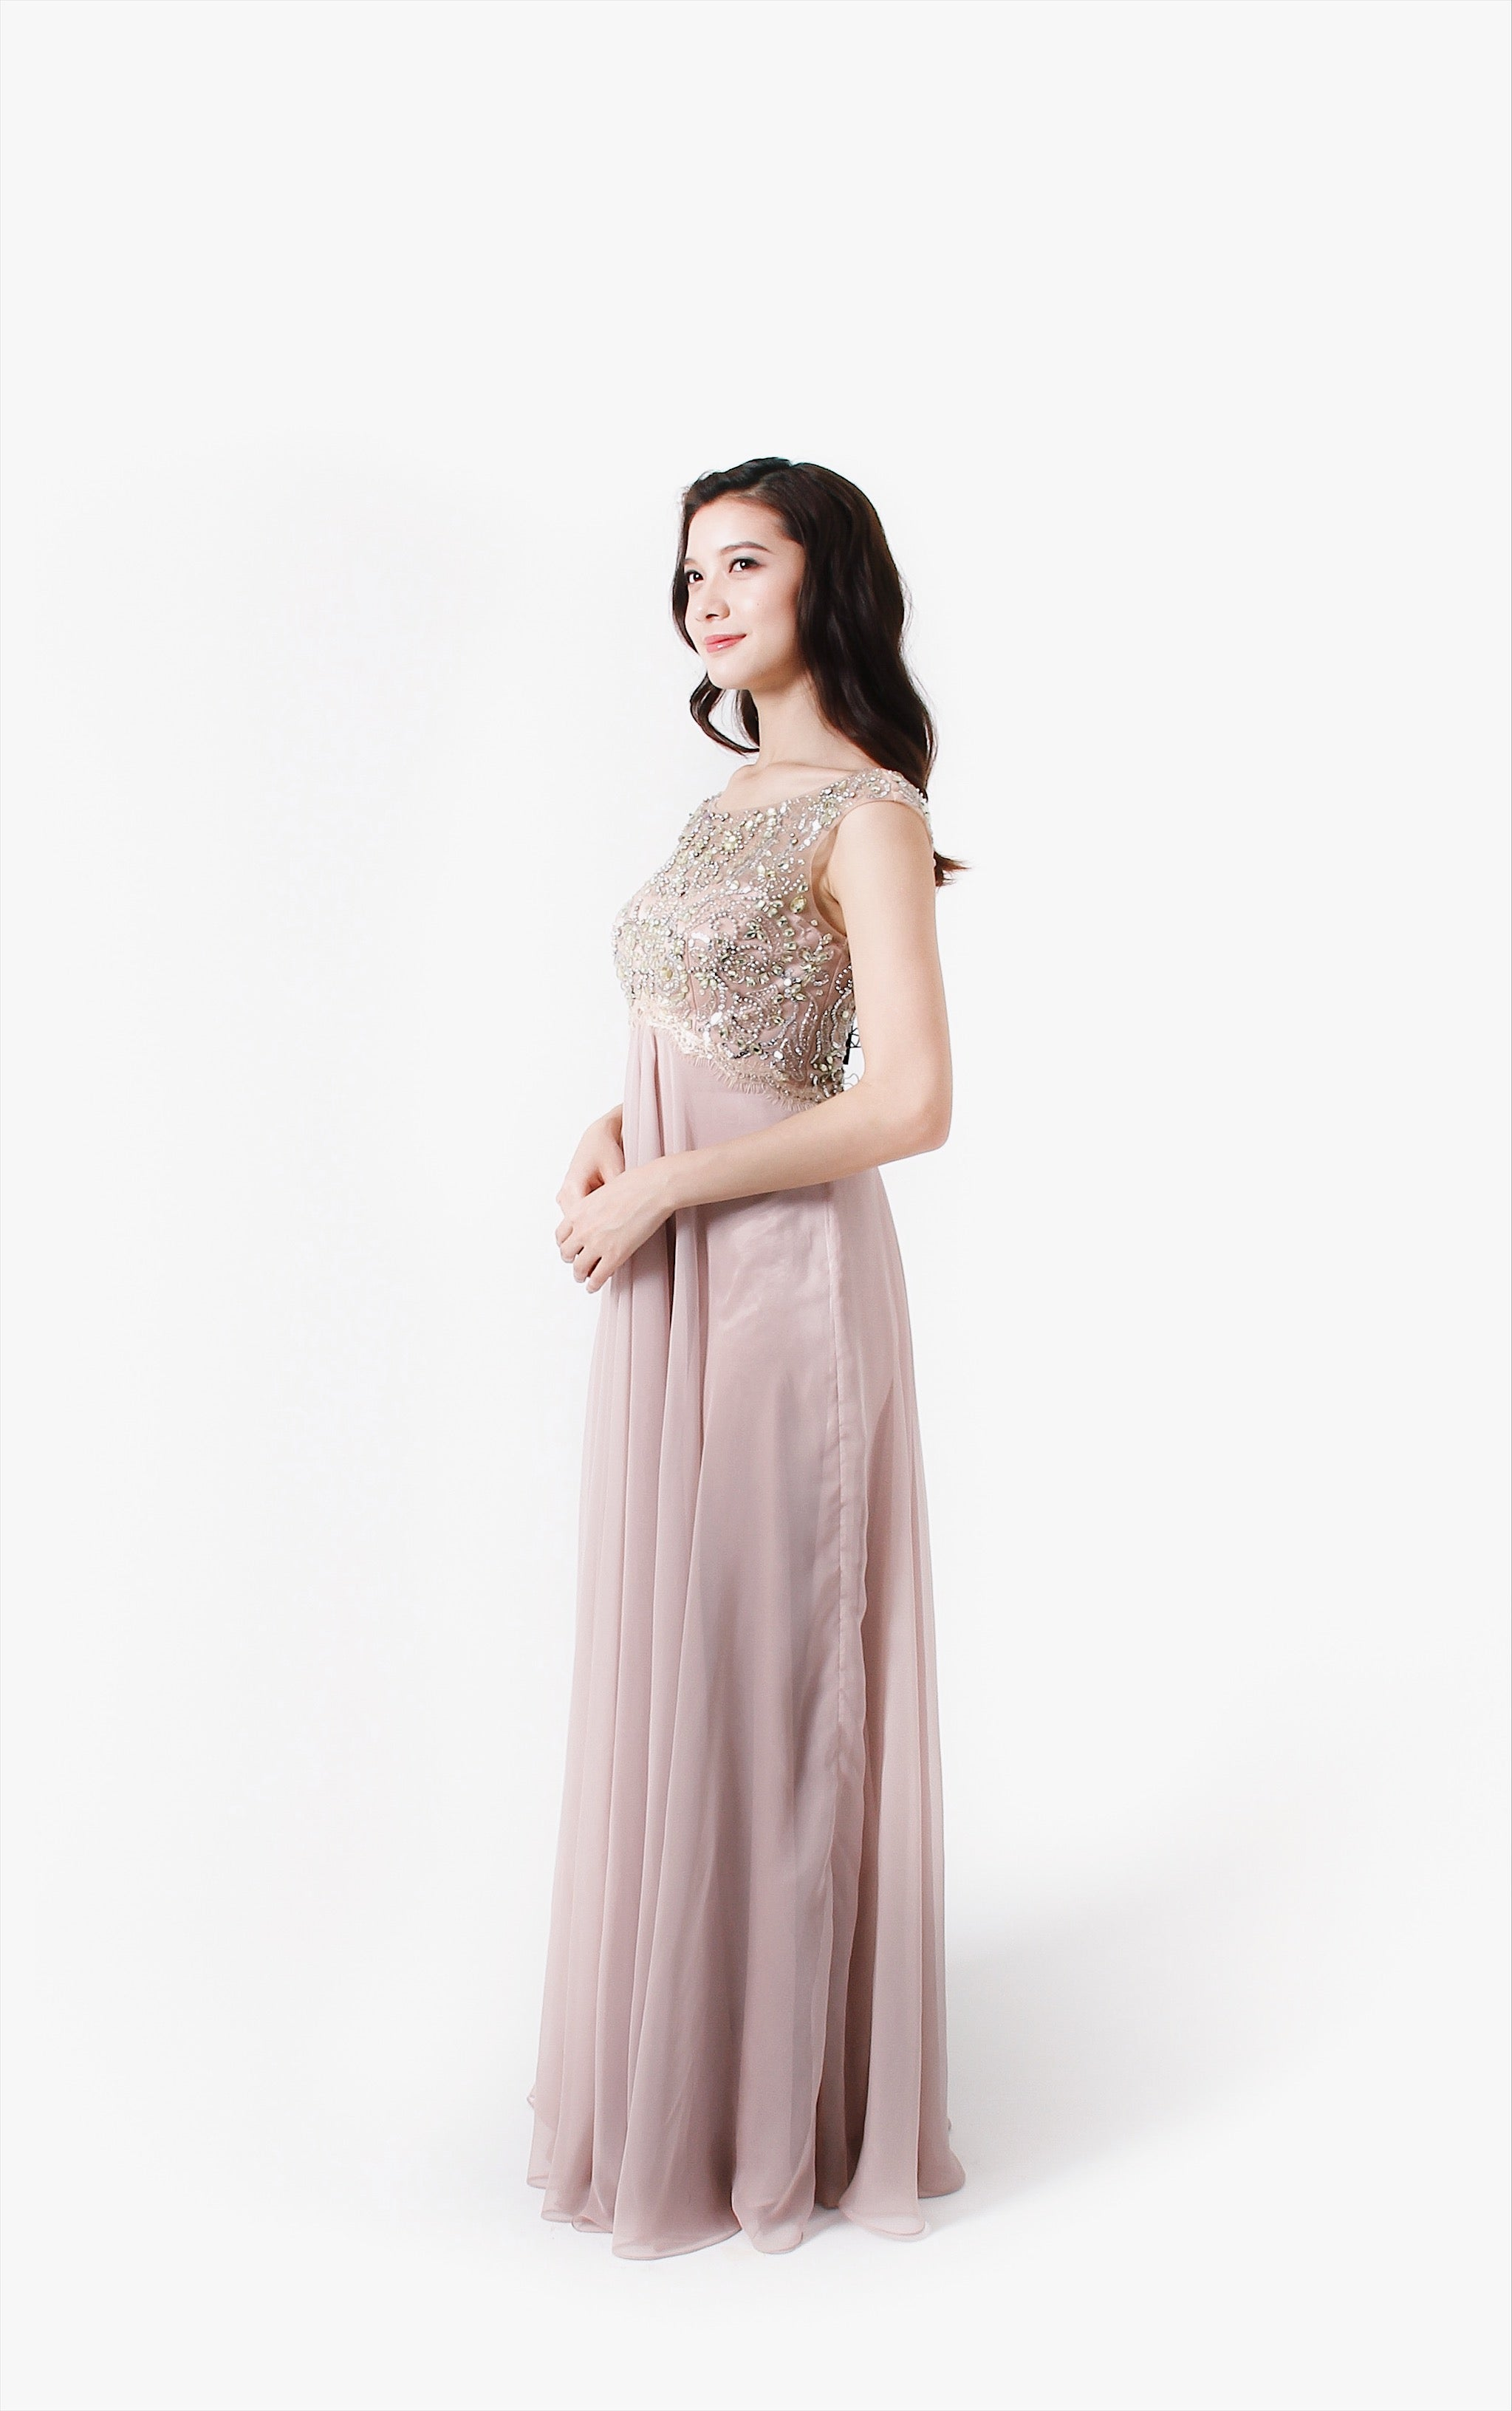 Elegant Encounter Pale Dress